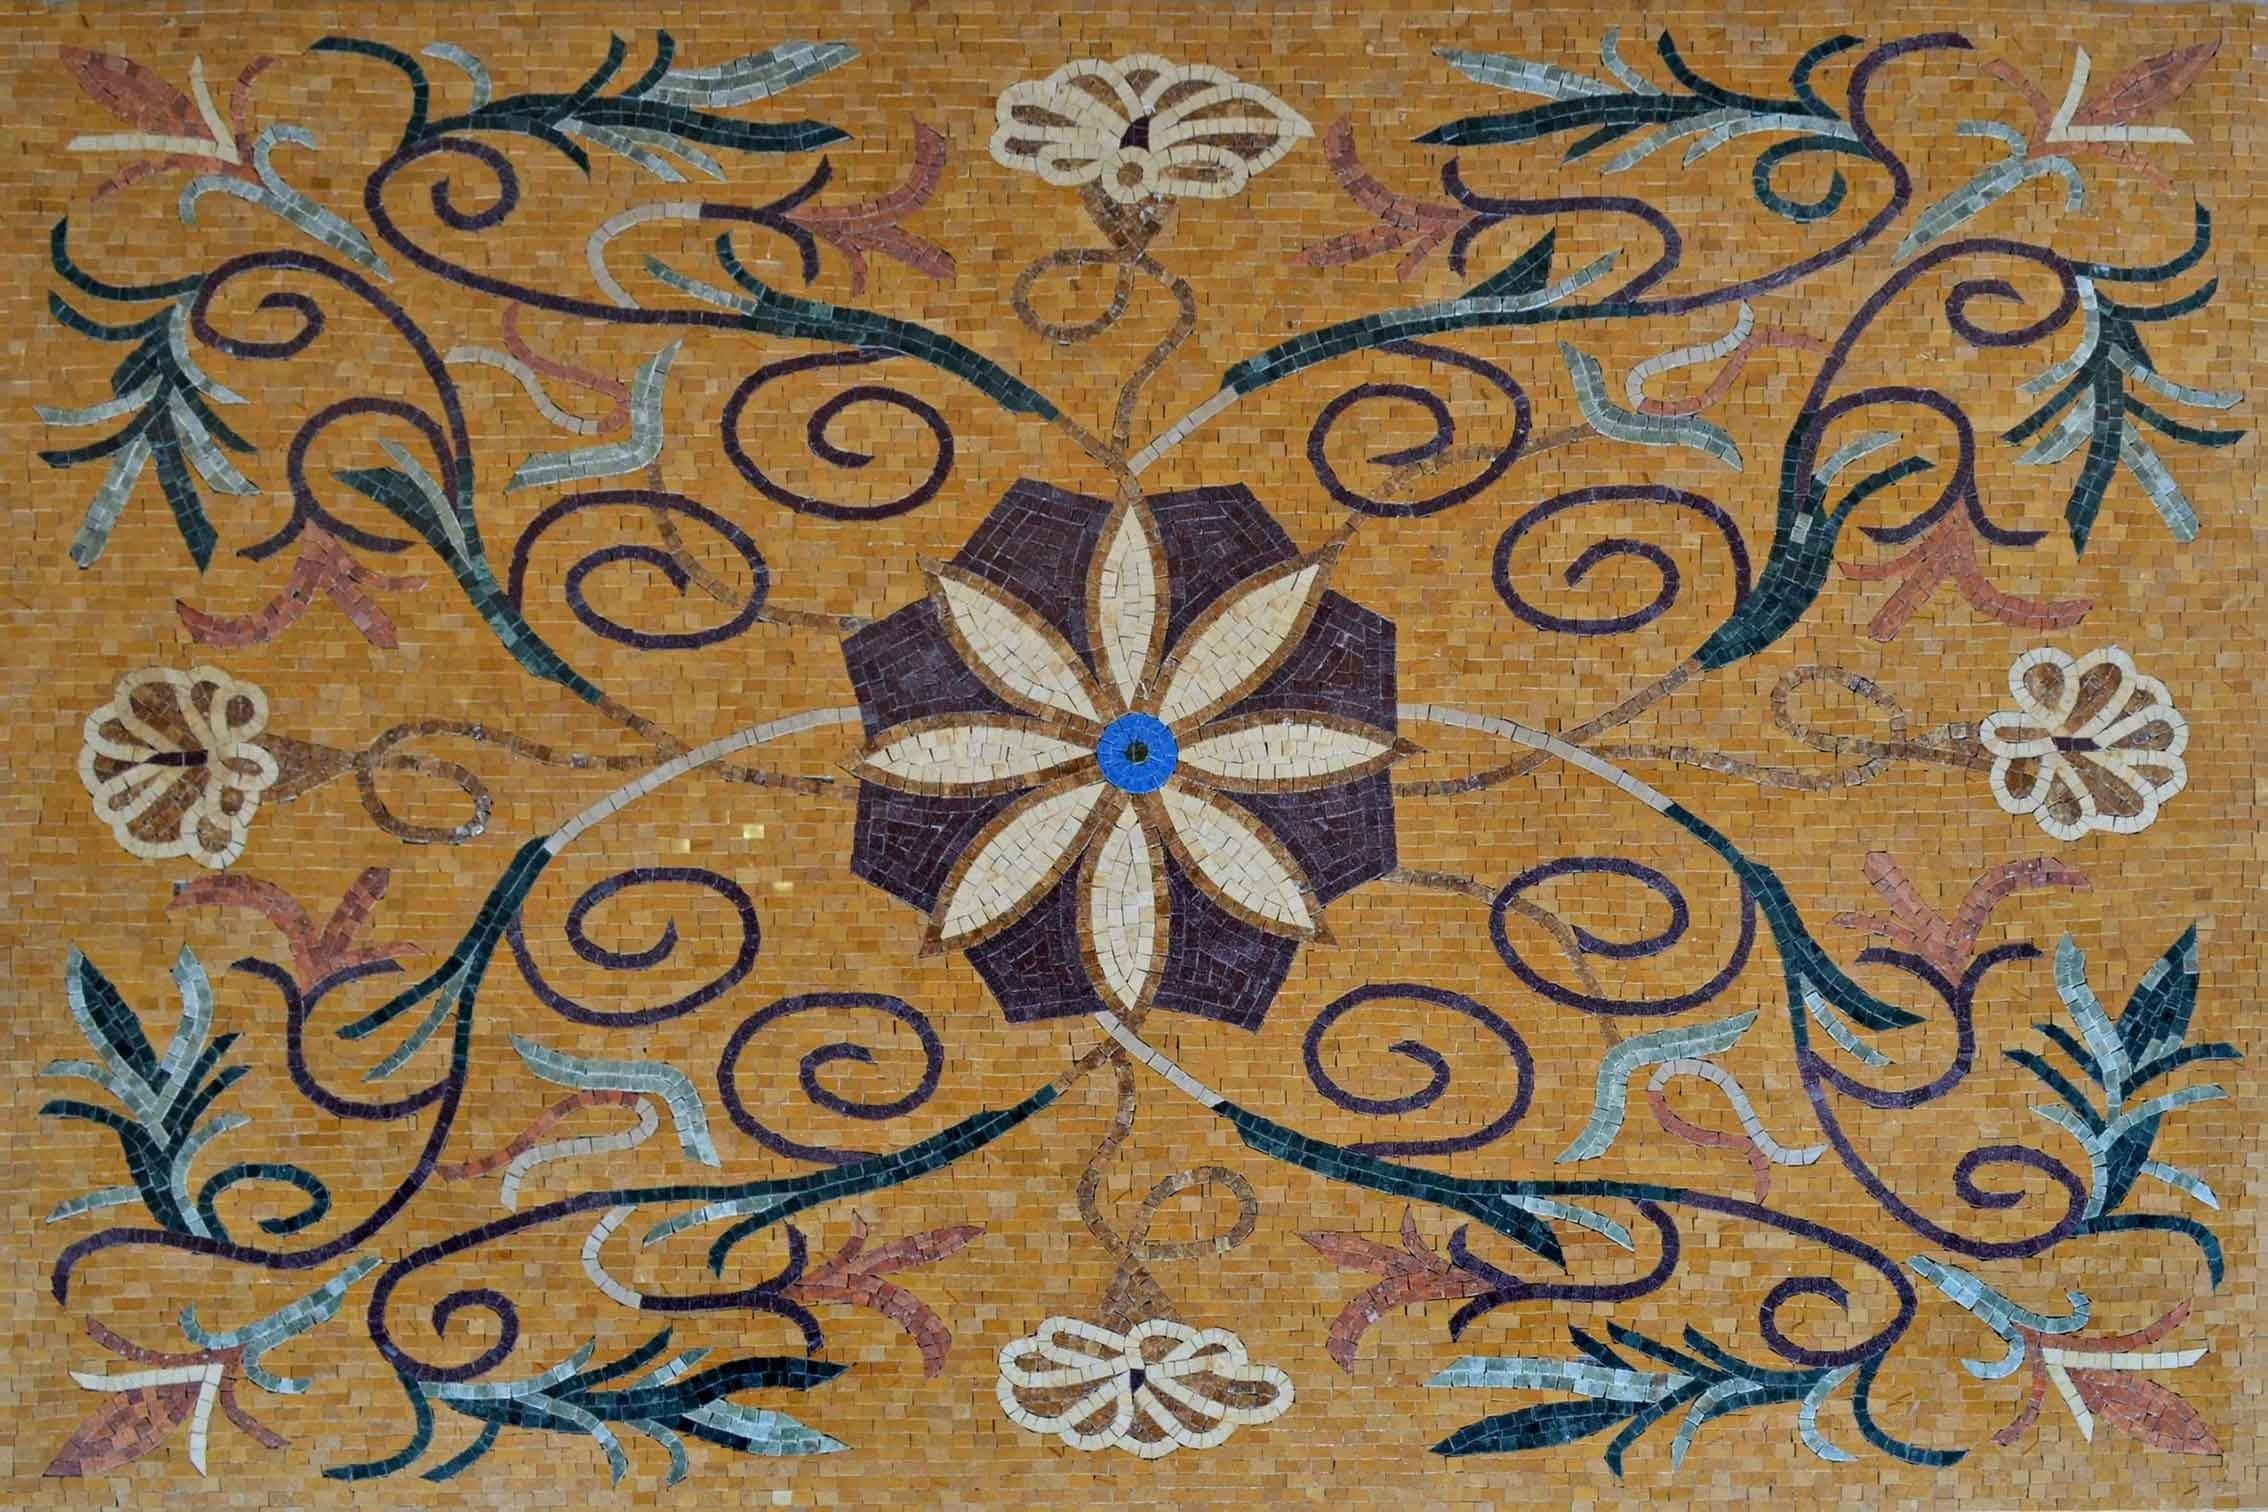 Mosaic Designs - Upholstery